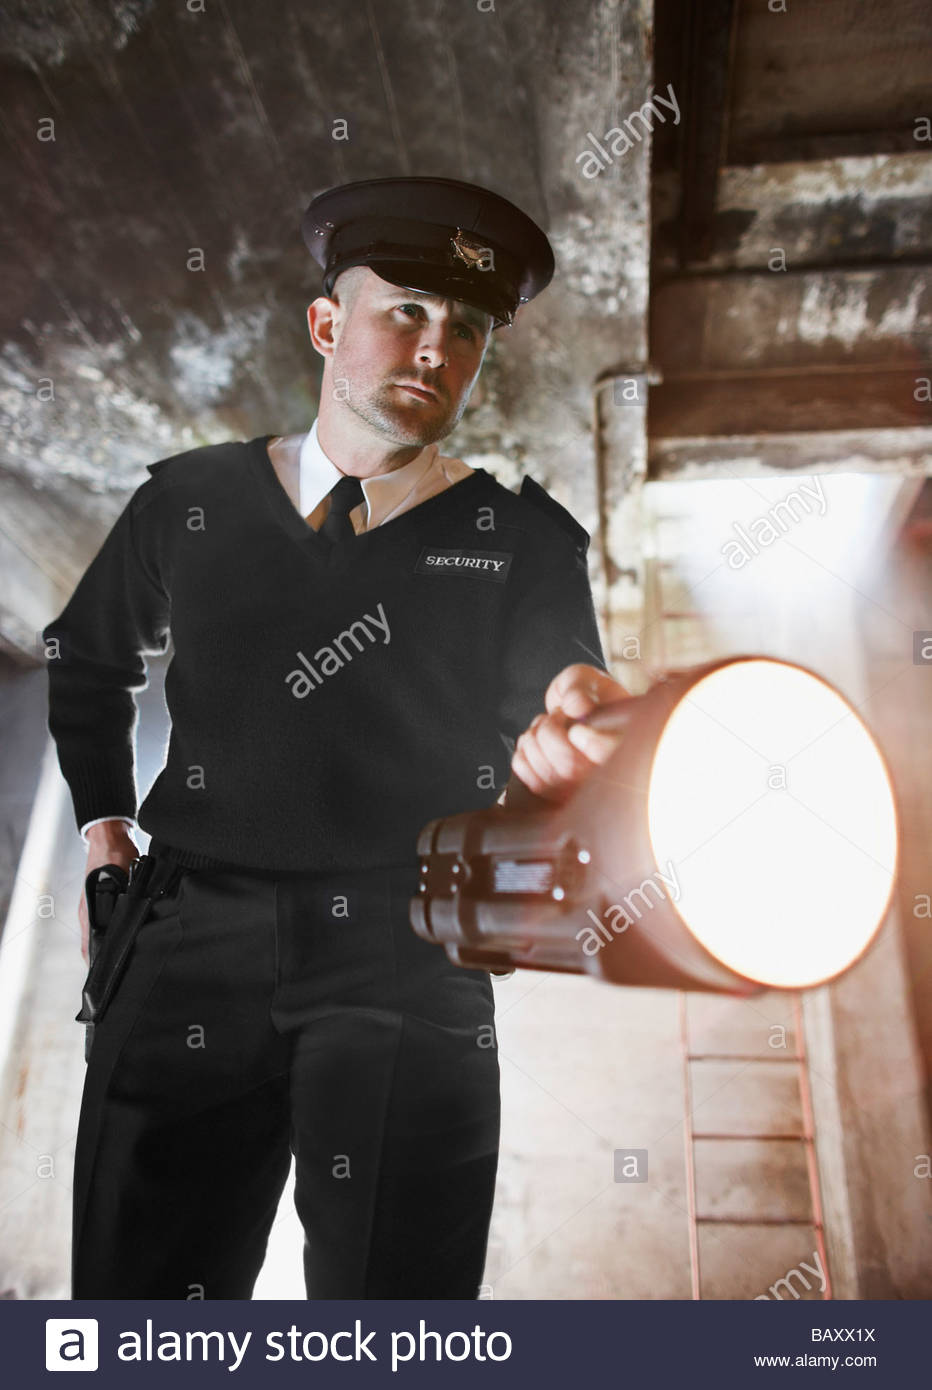 Security guard shining flashlight into bunker - Stock Image